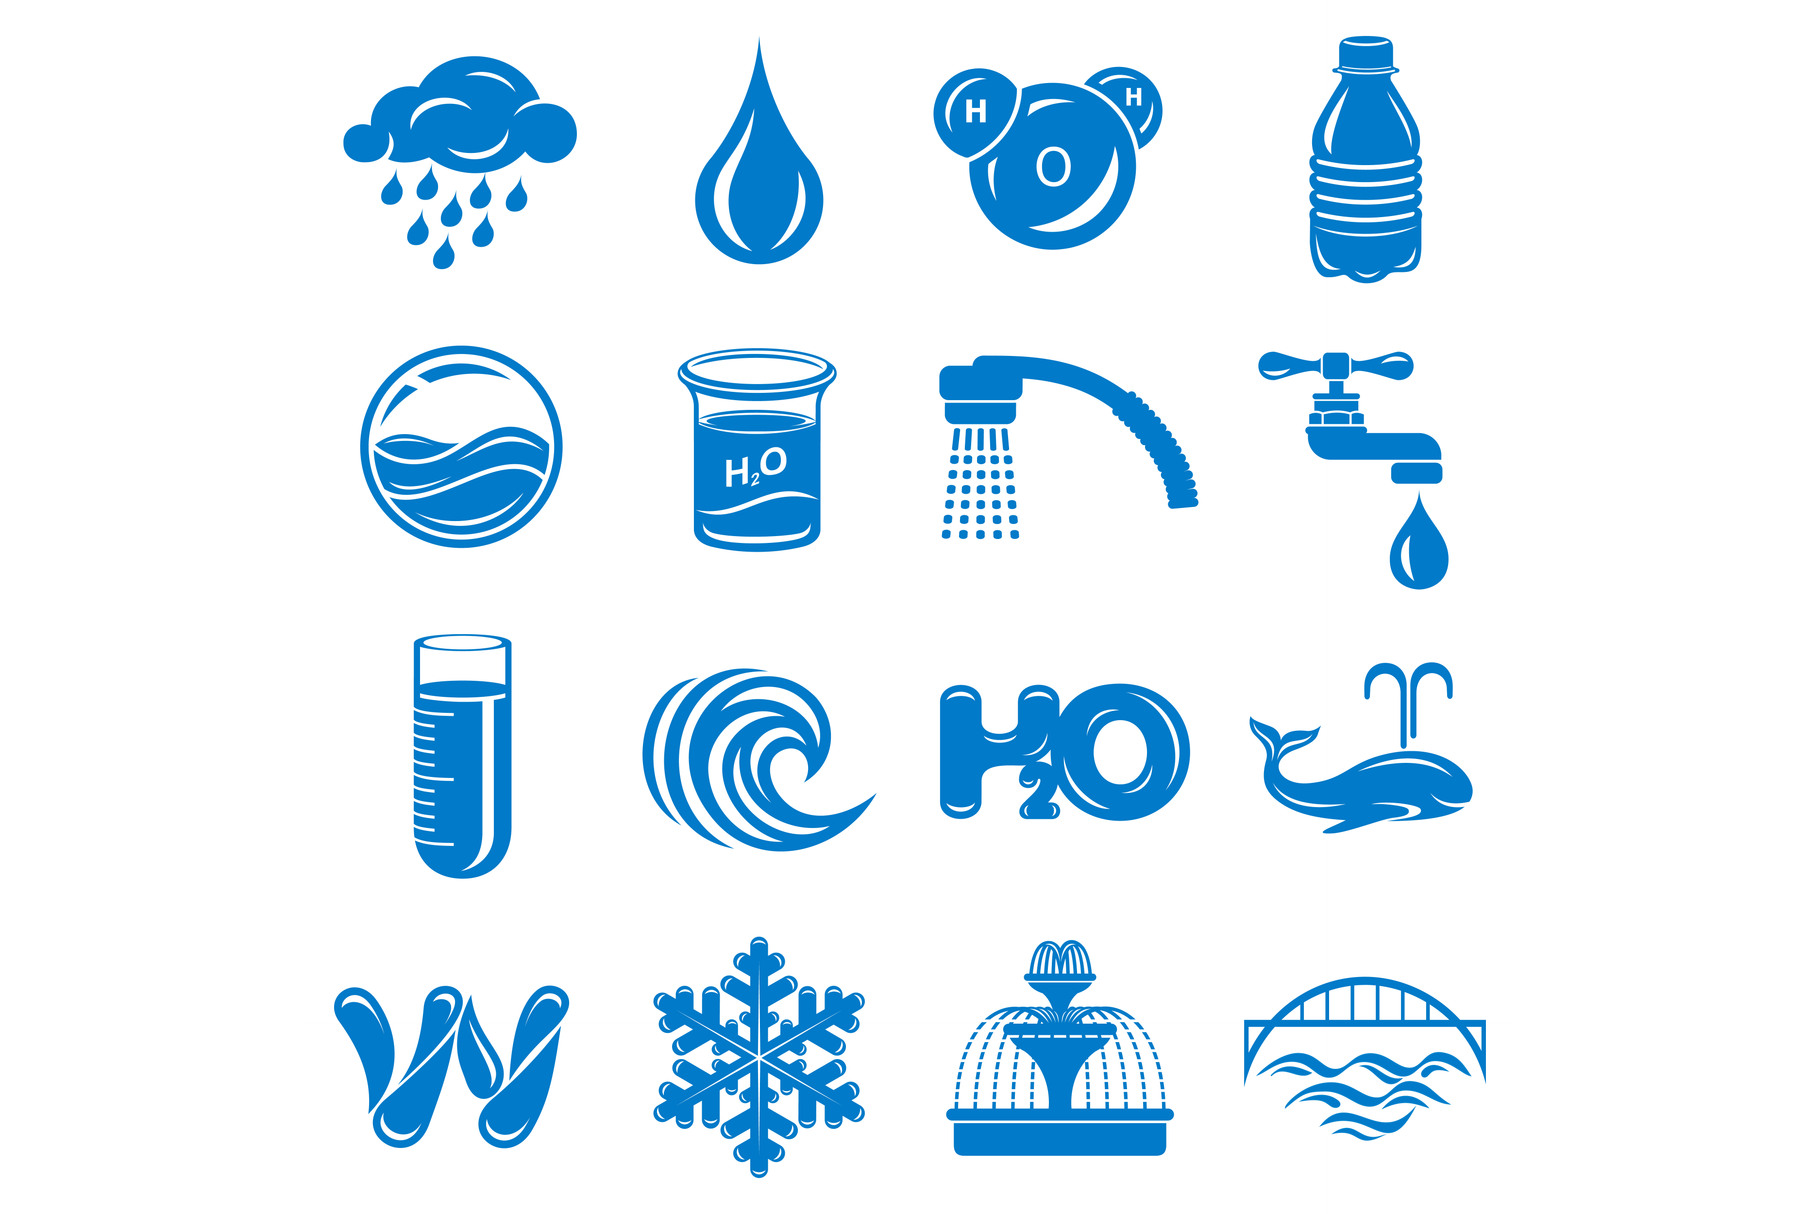 Water icons set, simple style example image 1